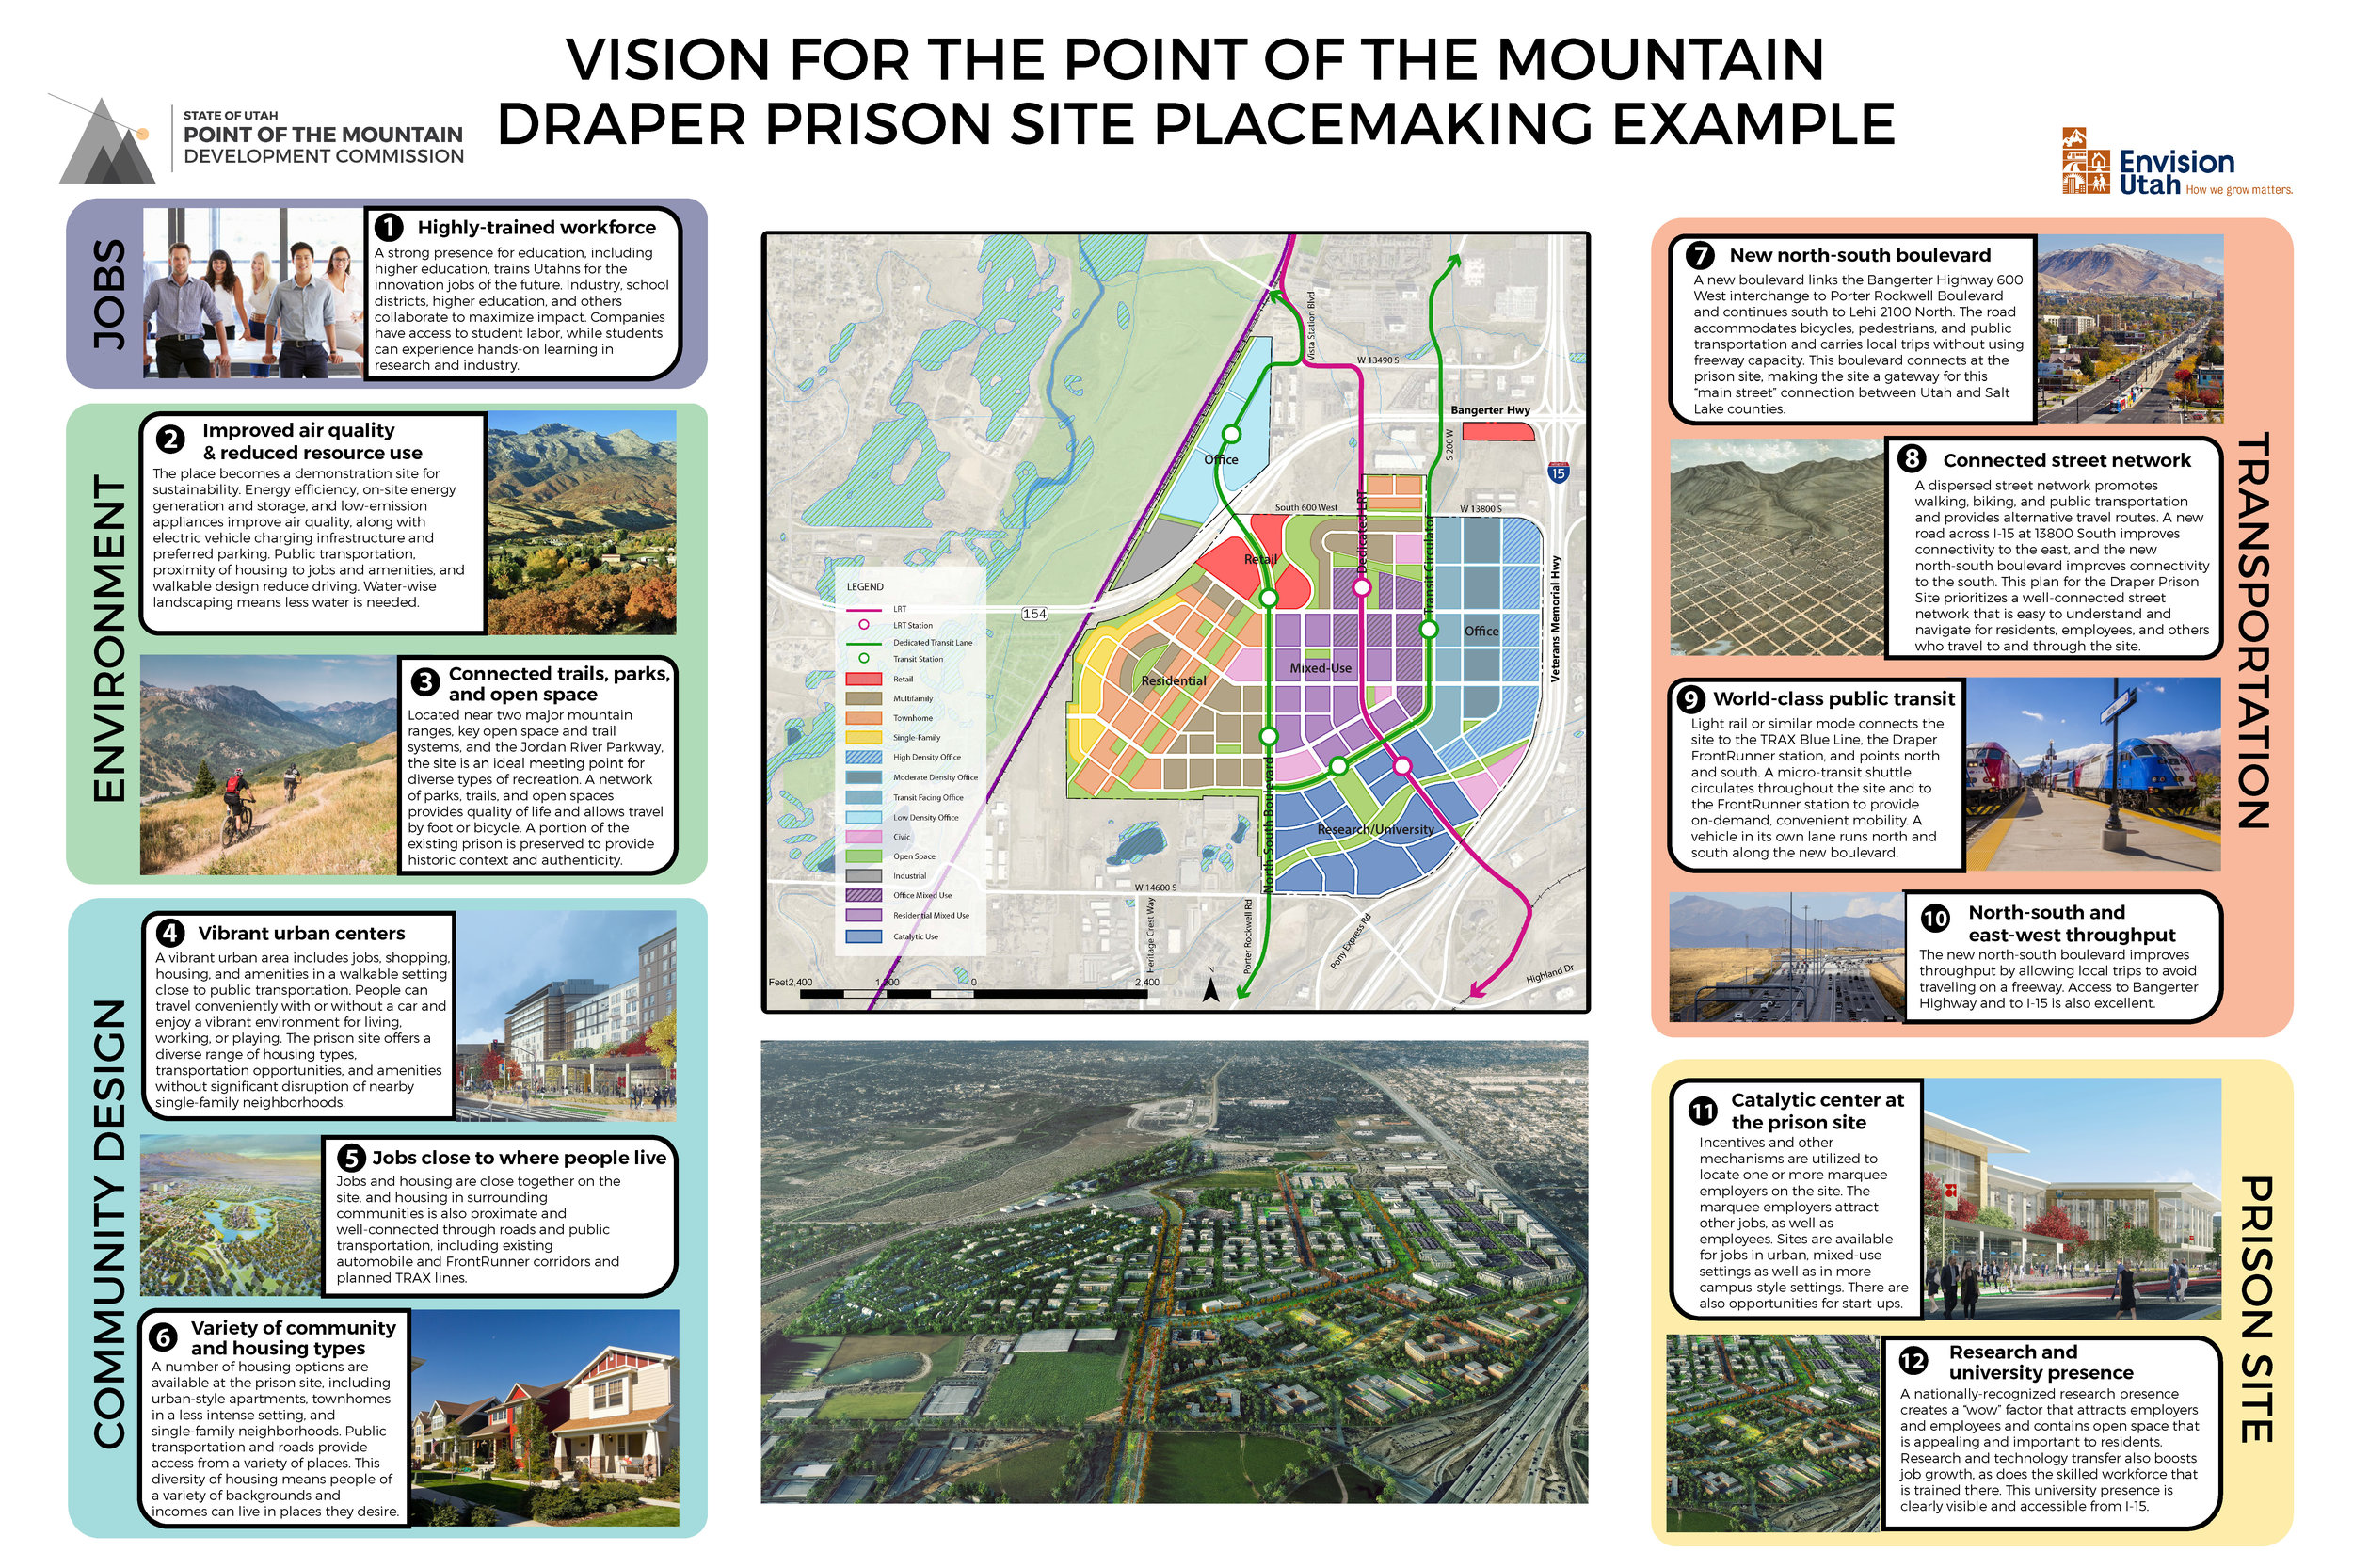 A site plan detailing how the Draper prison site could be an example of the 12 signature elements contained within the Point of the Mountain vision.